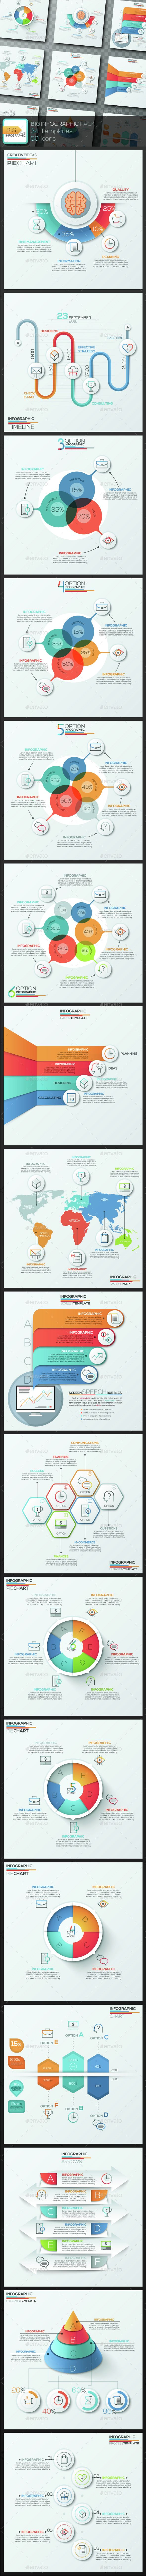 Big Infographic Pack — Photoshop PSD #technology #infographic • Available here → graphicriver.net/…